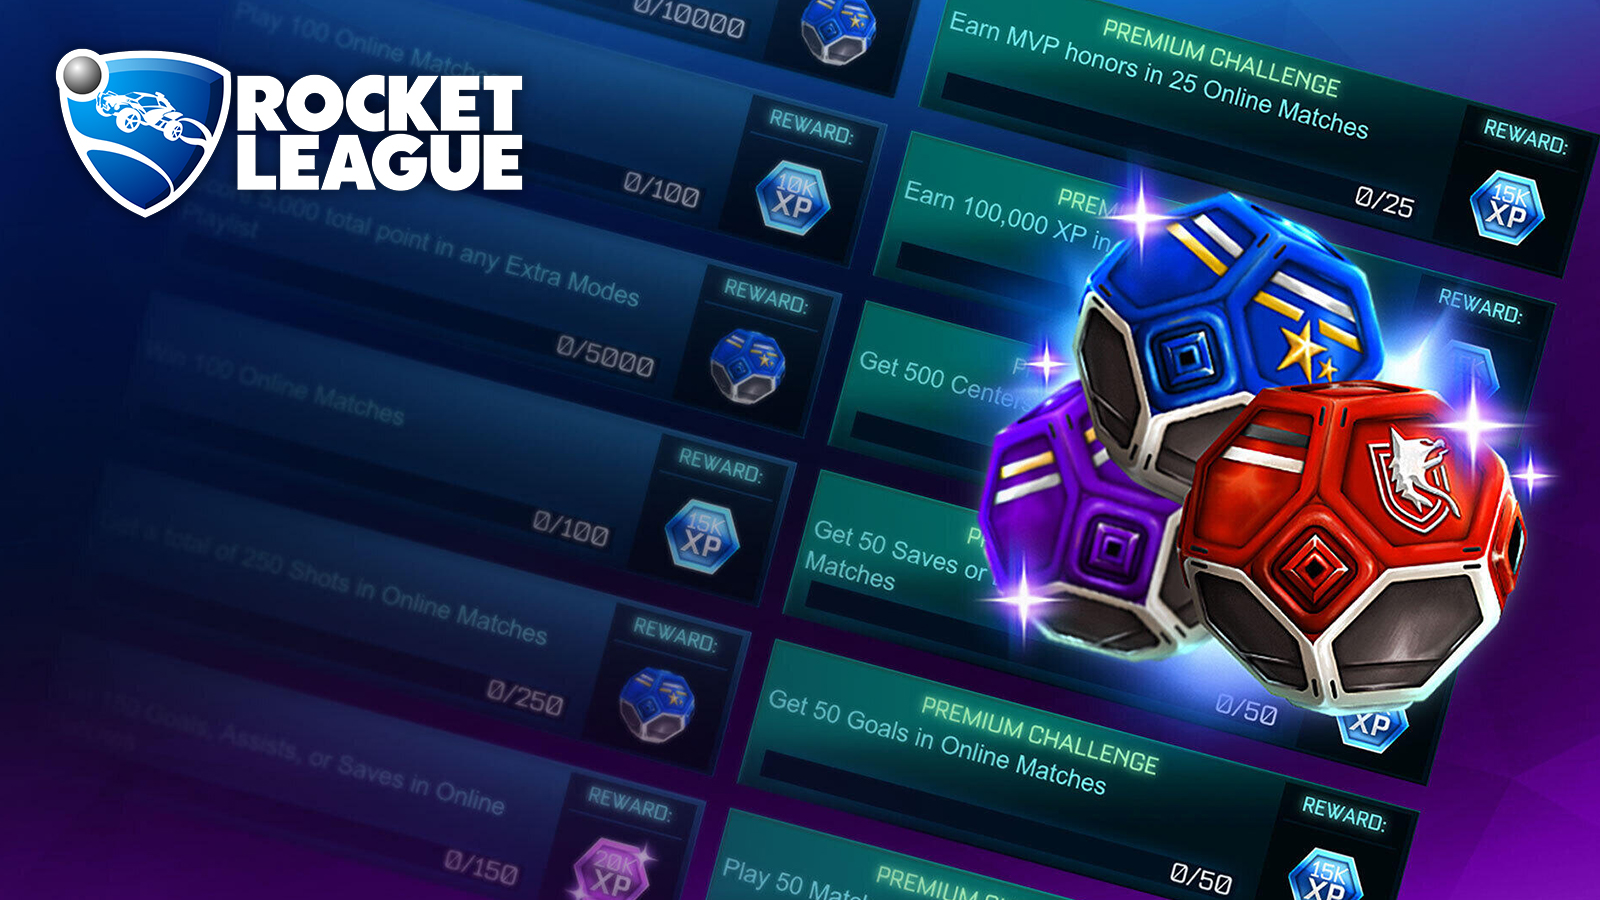 Rocket League Season 1 Tournament Challenges